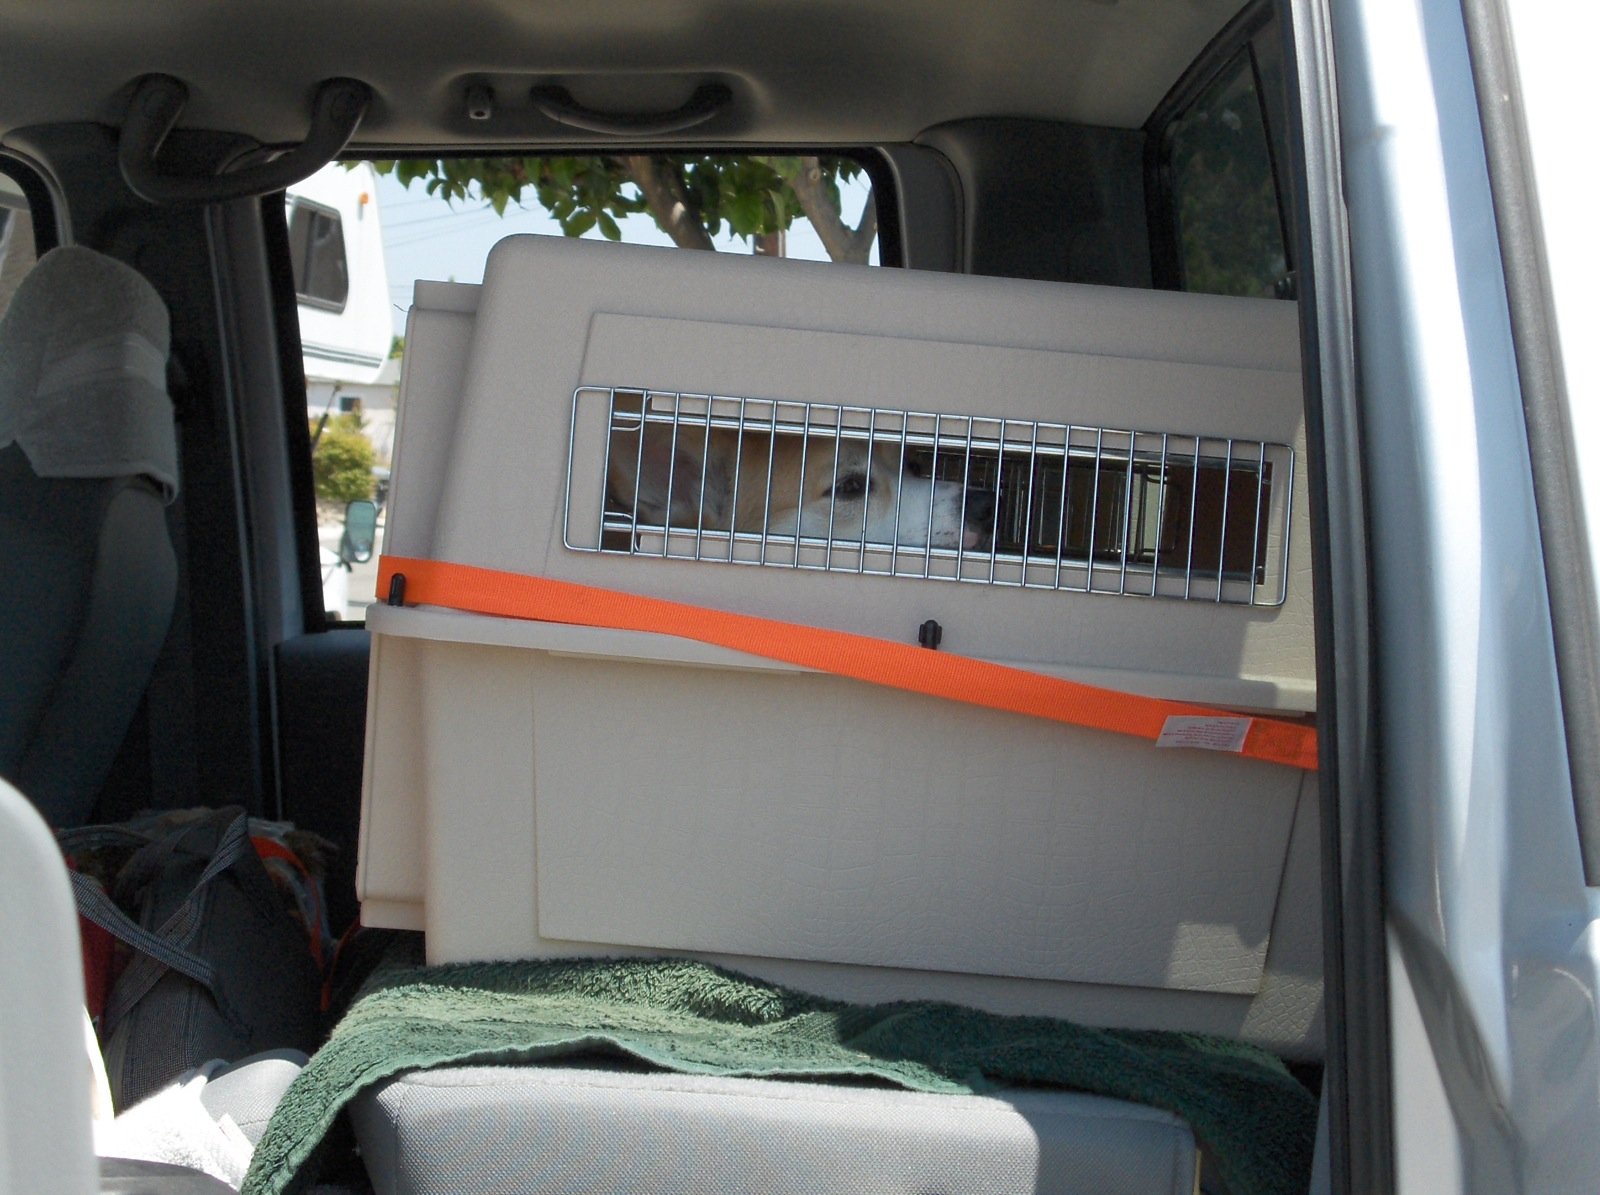 Click image for larger version  Name:HPIM2559 Mac in crate in F250.jpg Views:65 Size:442.5 KB ID:163234